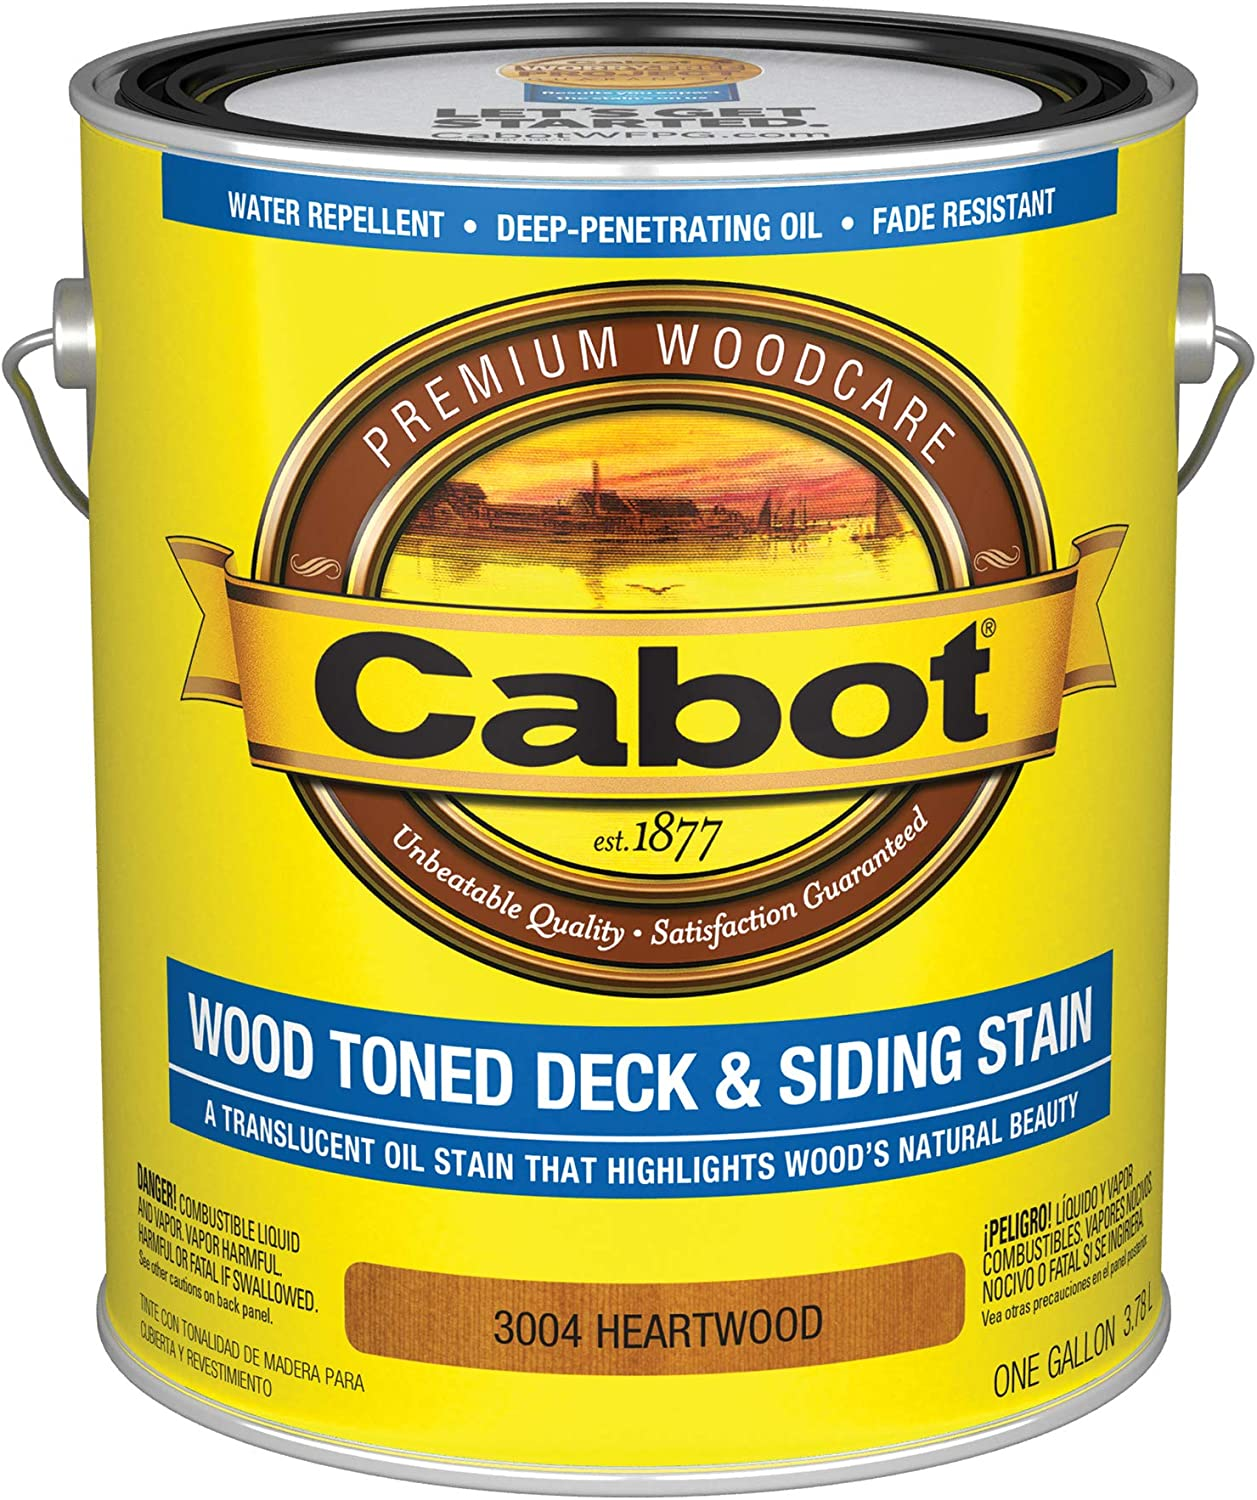 Cabot 3004 service Wood Toned Free shipping Deck Siding 1 Oil Stain G Oxide Formula